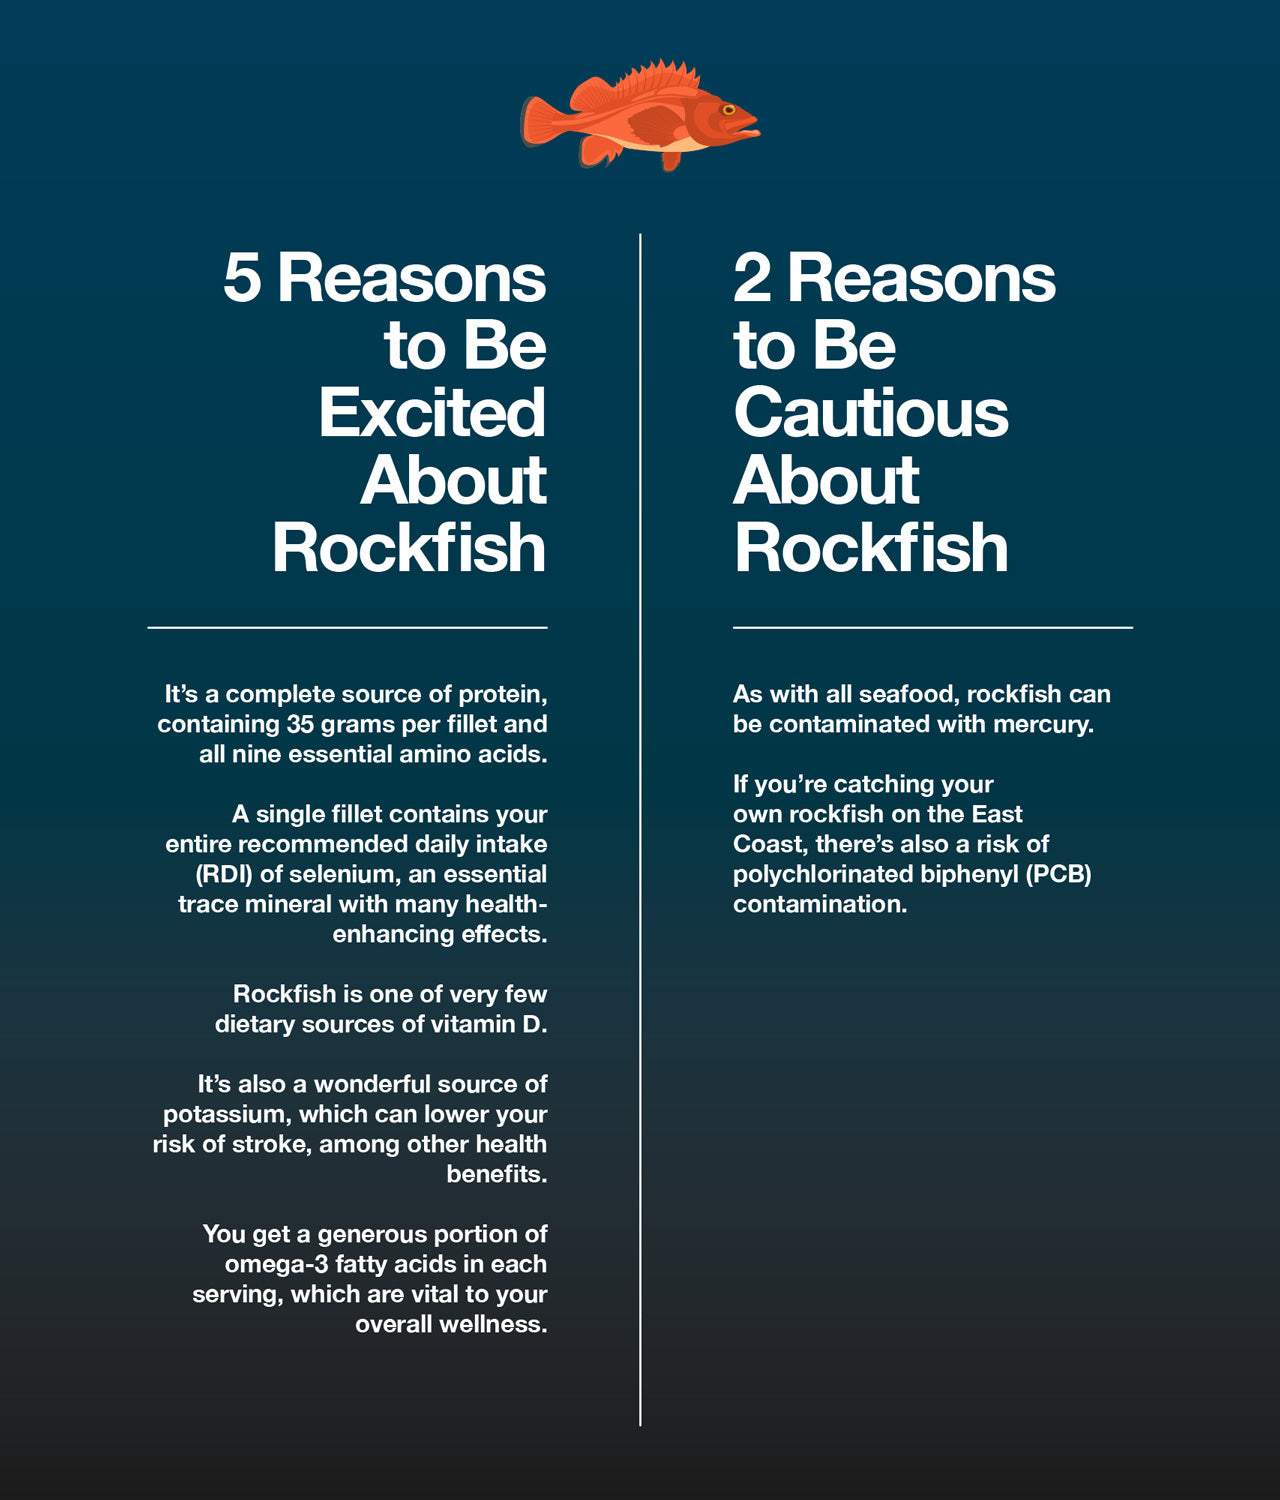 Here are 5 reasons to be excited about rockfish and 2 reasons to be cautious about it.